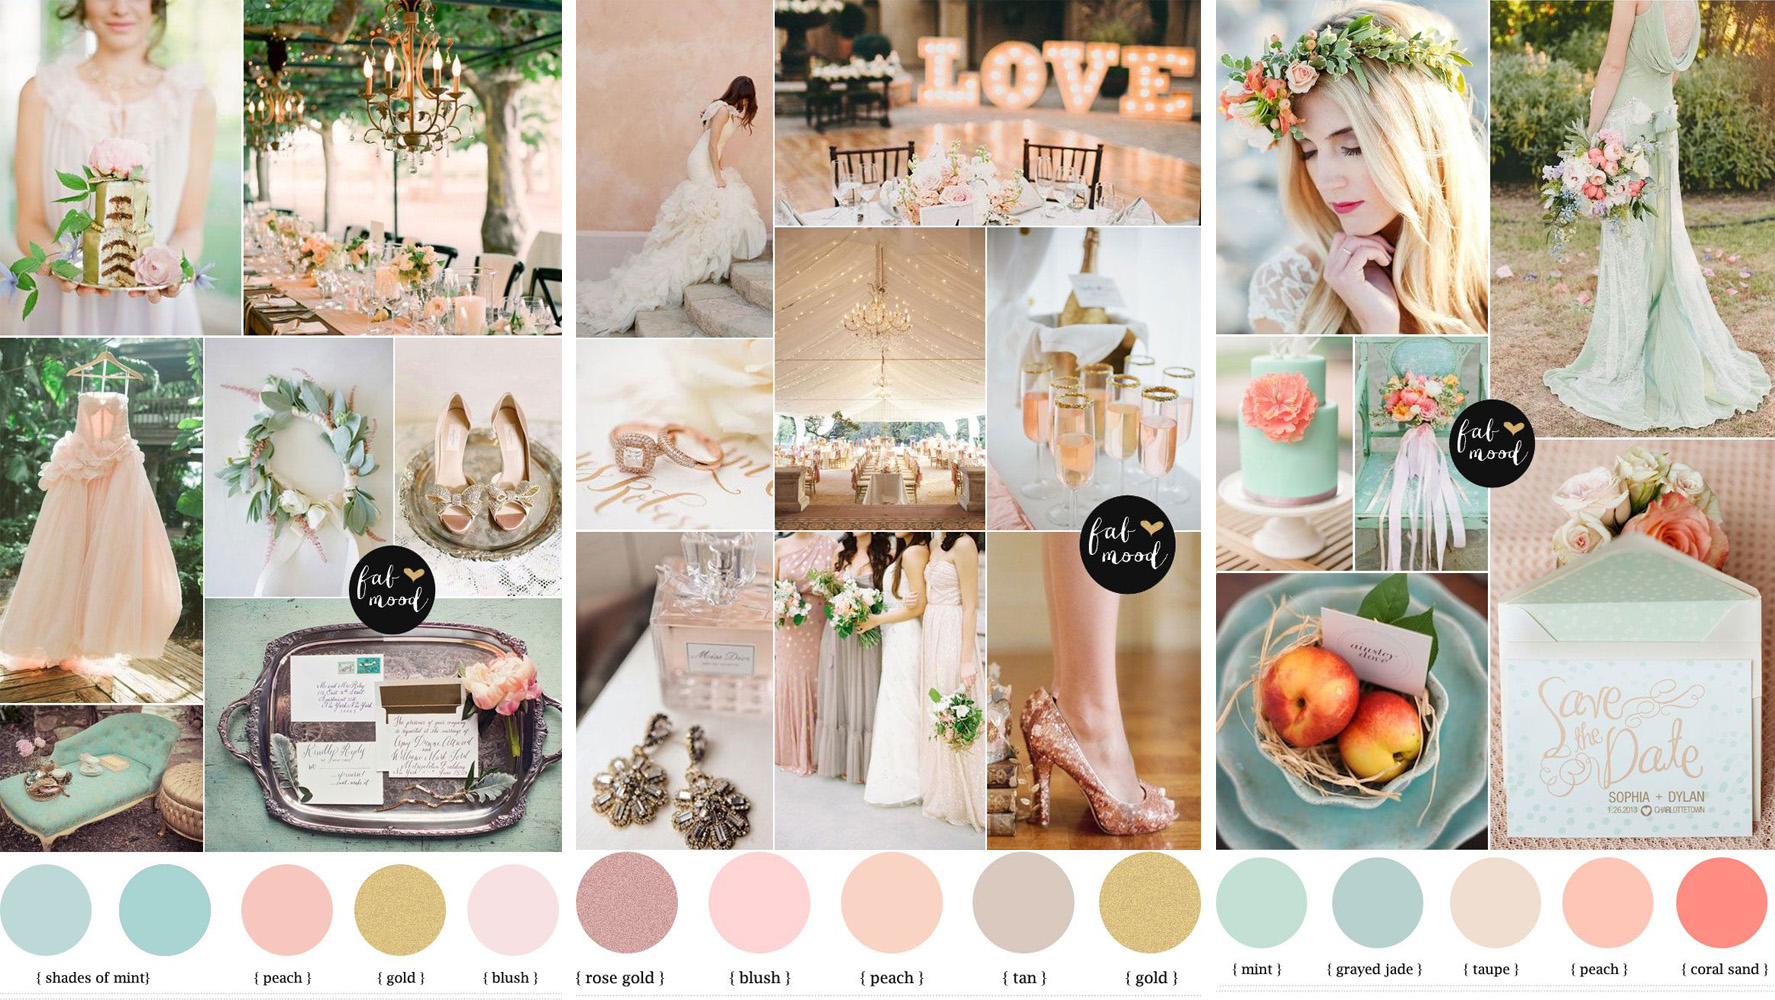 How To Effectively Plan A Wedding With Pinterest